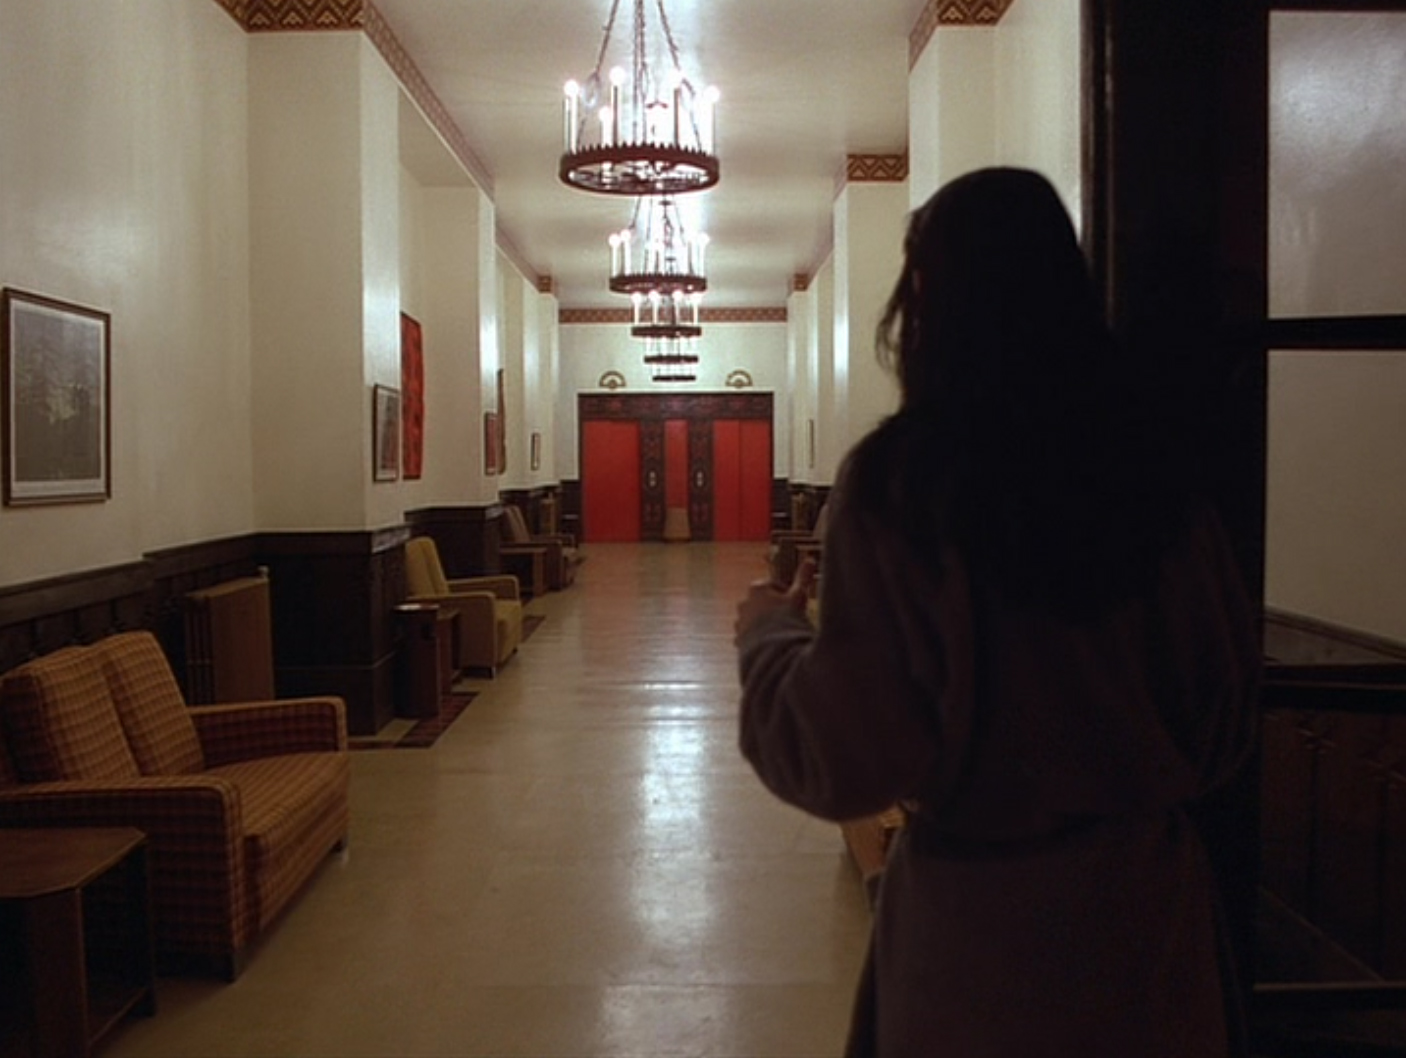 That Thing in the Elevator in 'The Shining'